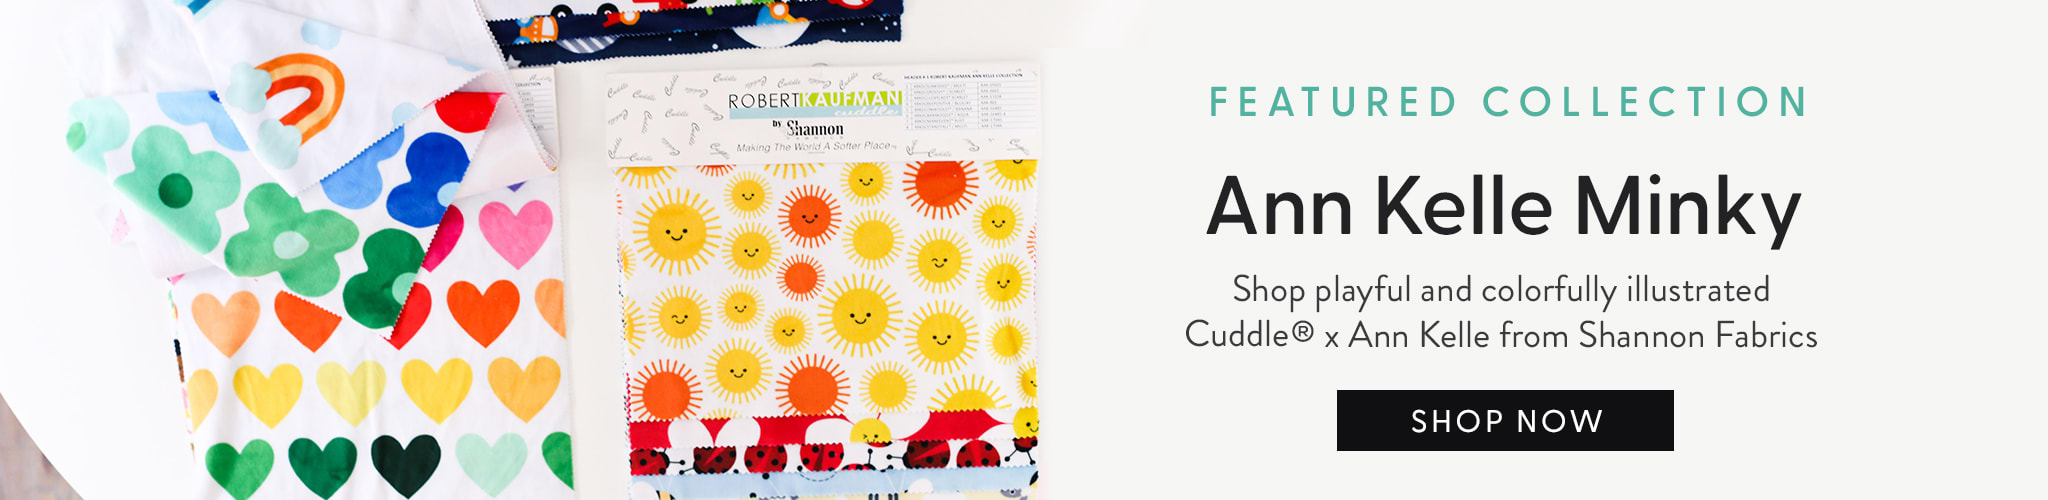 Feature Collection Ann Kelle Minky. Shop playful and colorful illustrated registered trademark Cuddle by Anne Kelle  from Shannon Fabrics. Shop now.